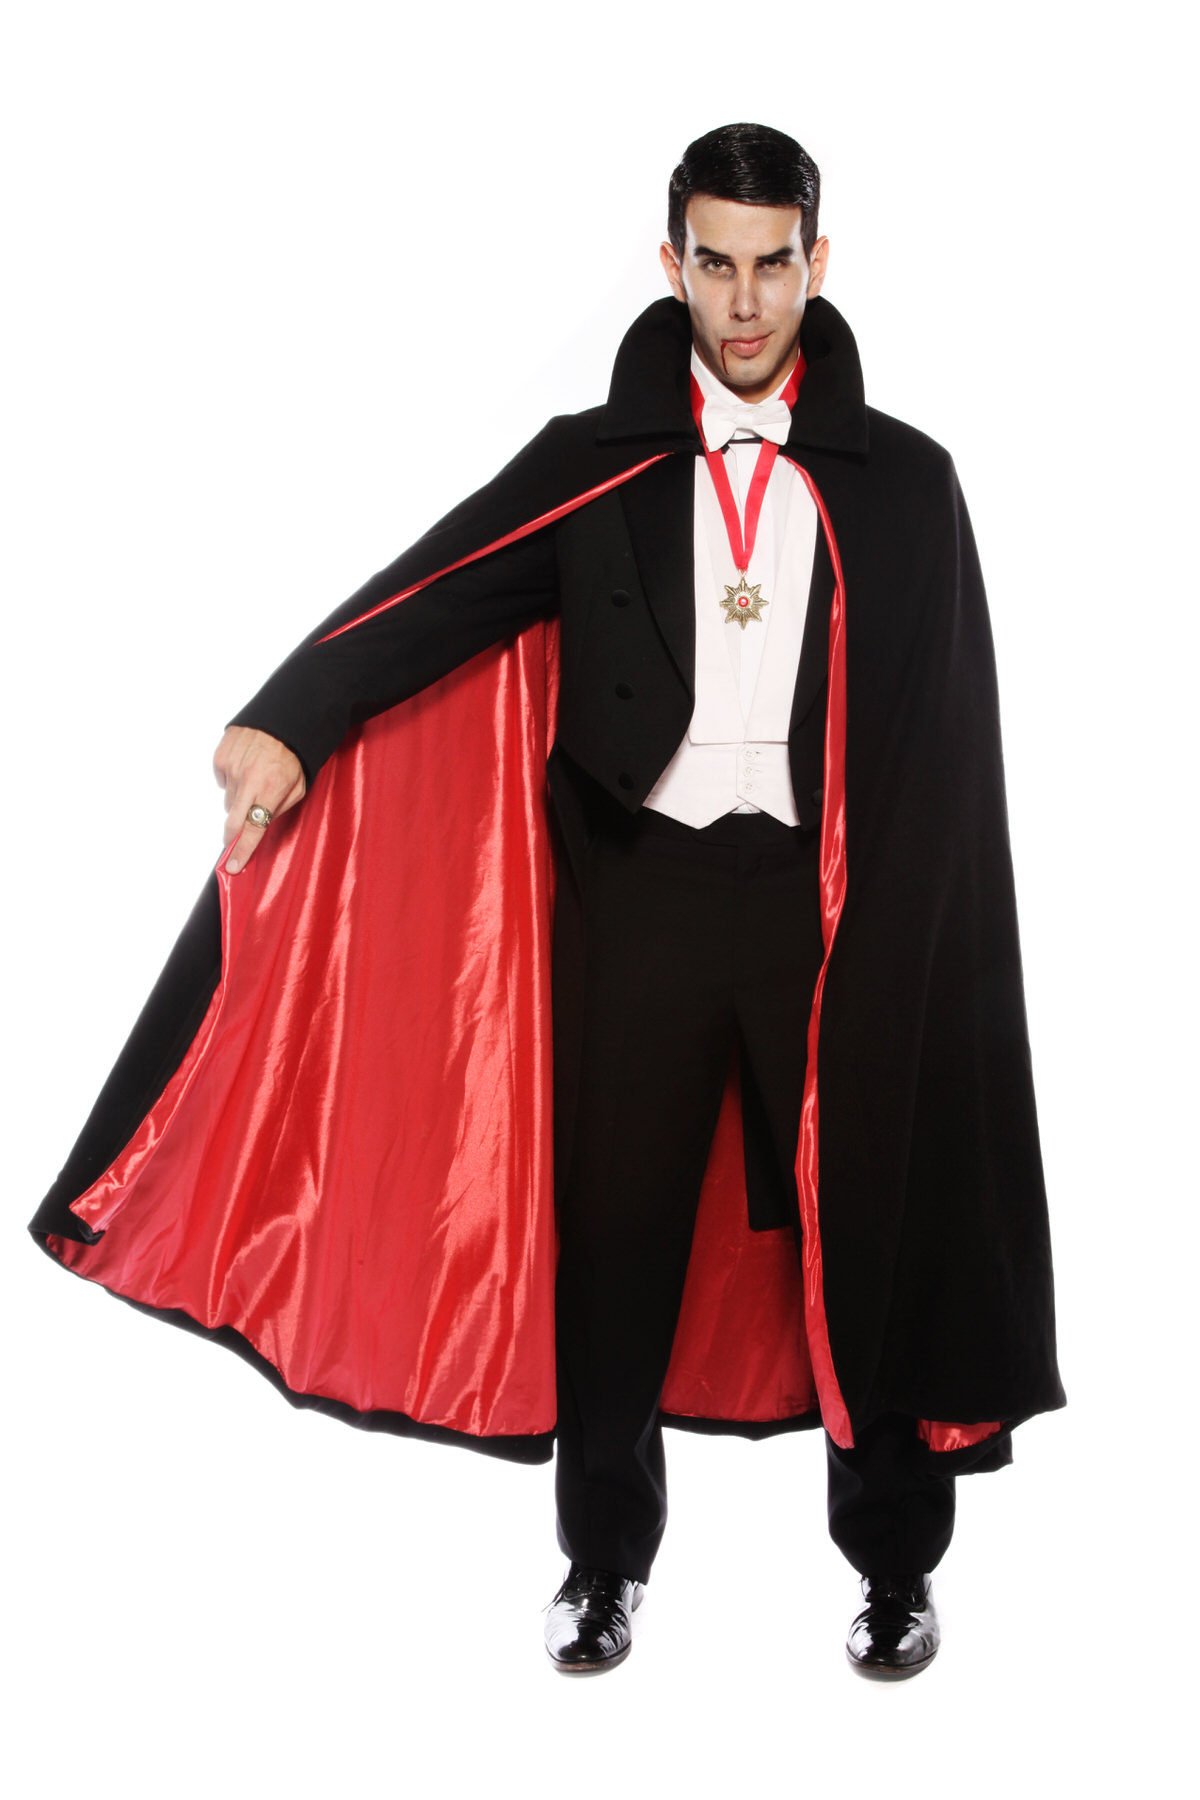 DELUXE DRACULA COSTUME WITH RED SATIN LINED CAPE